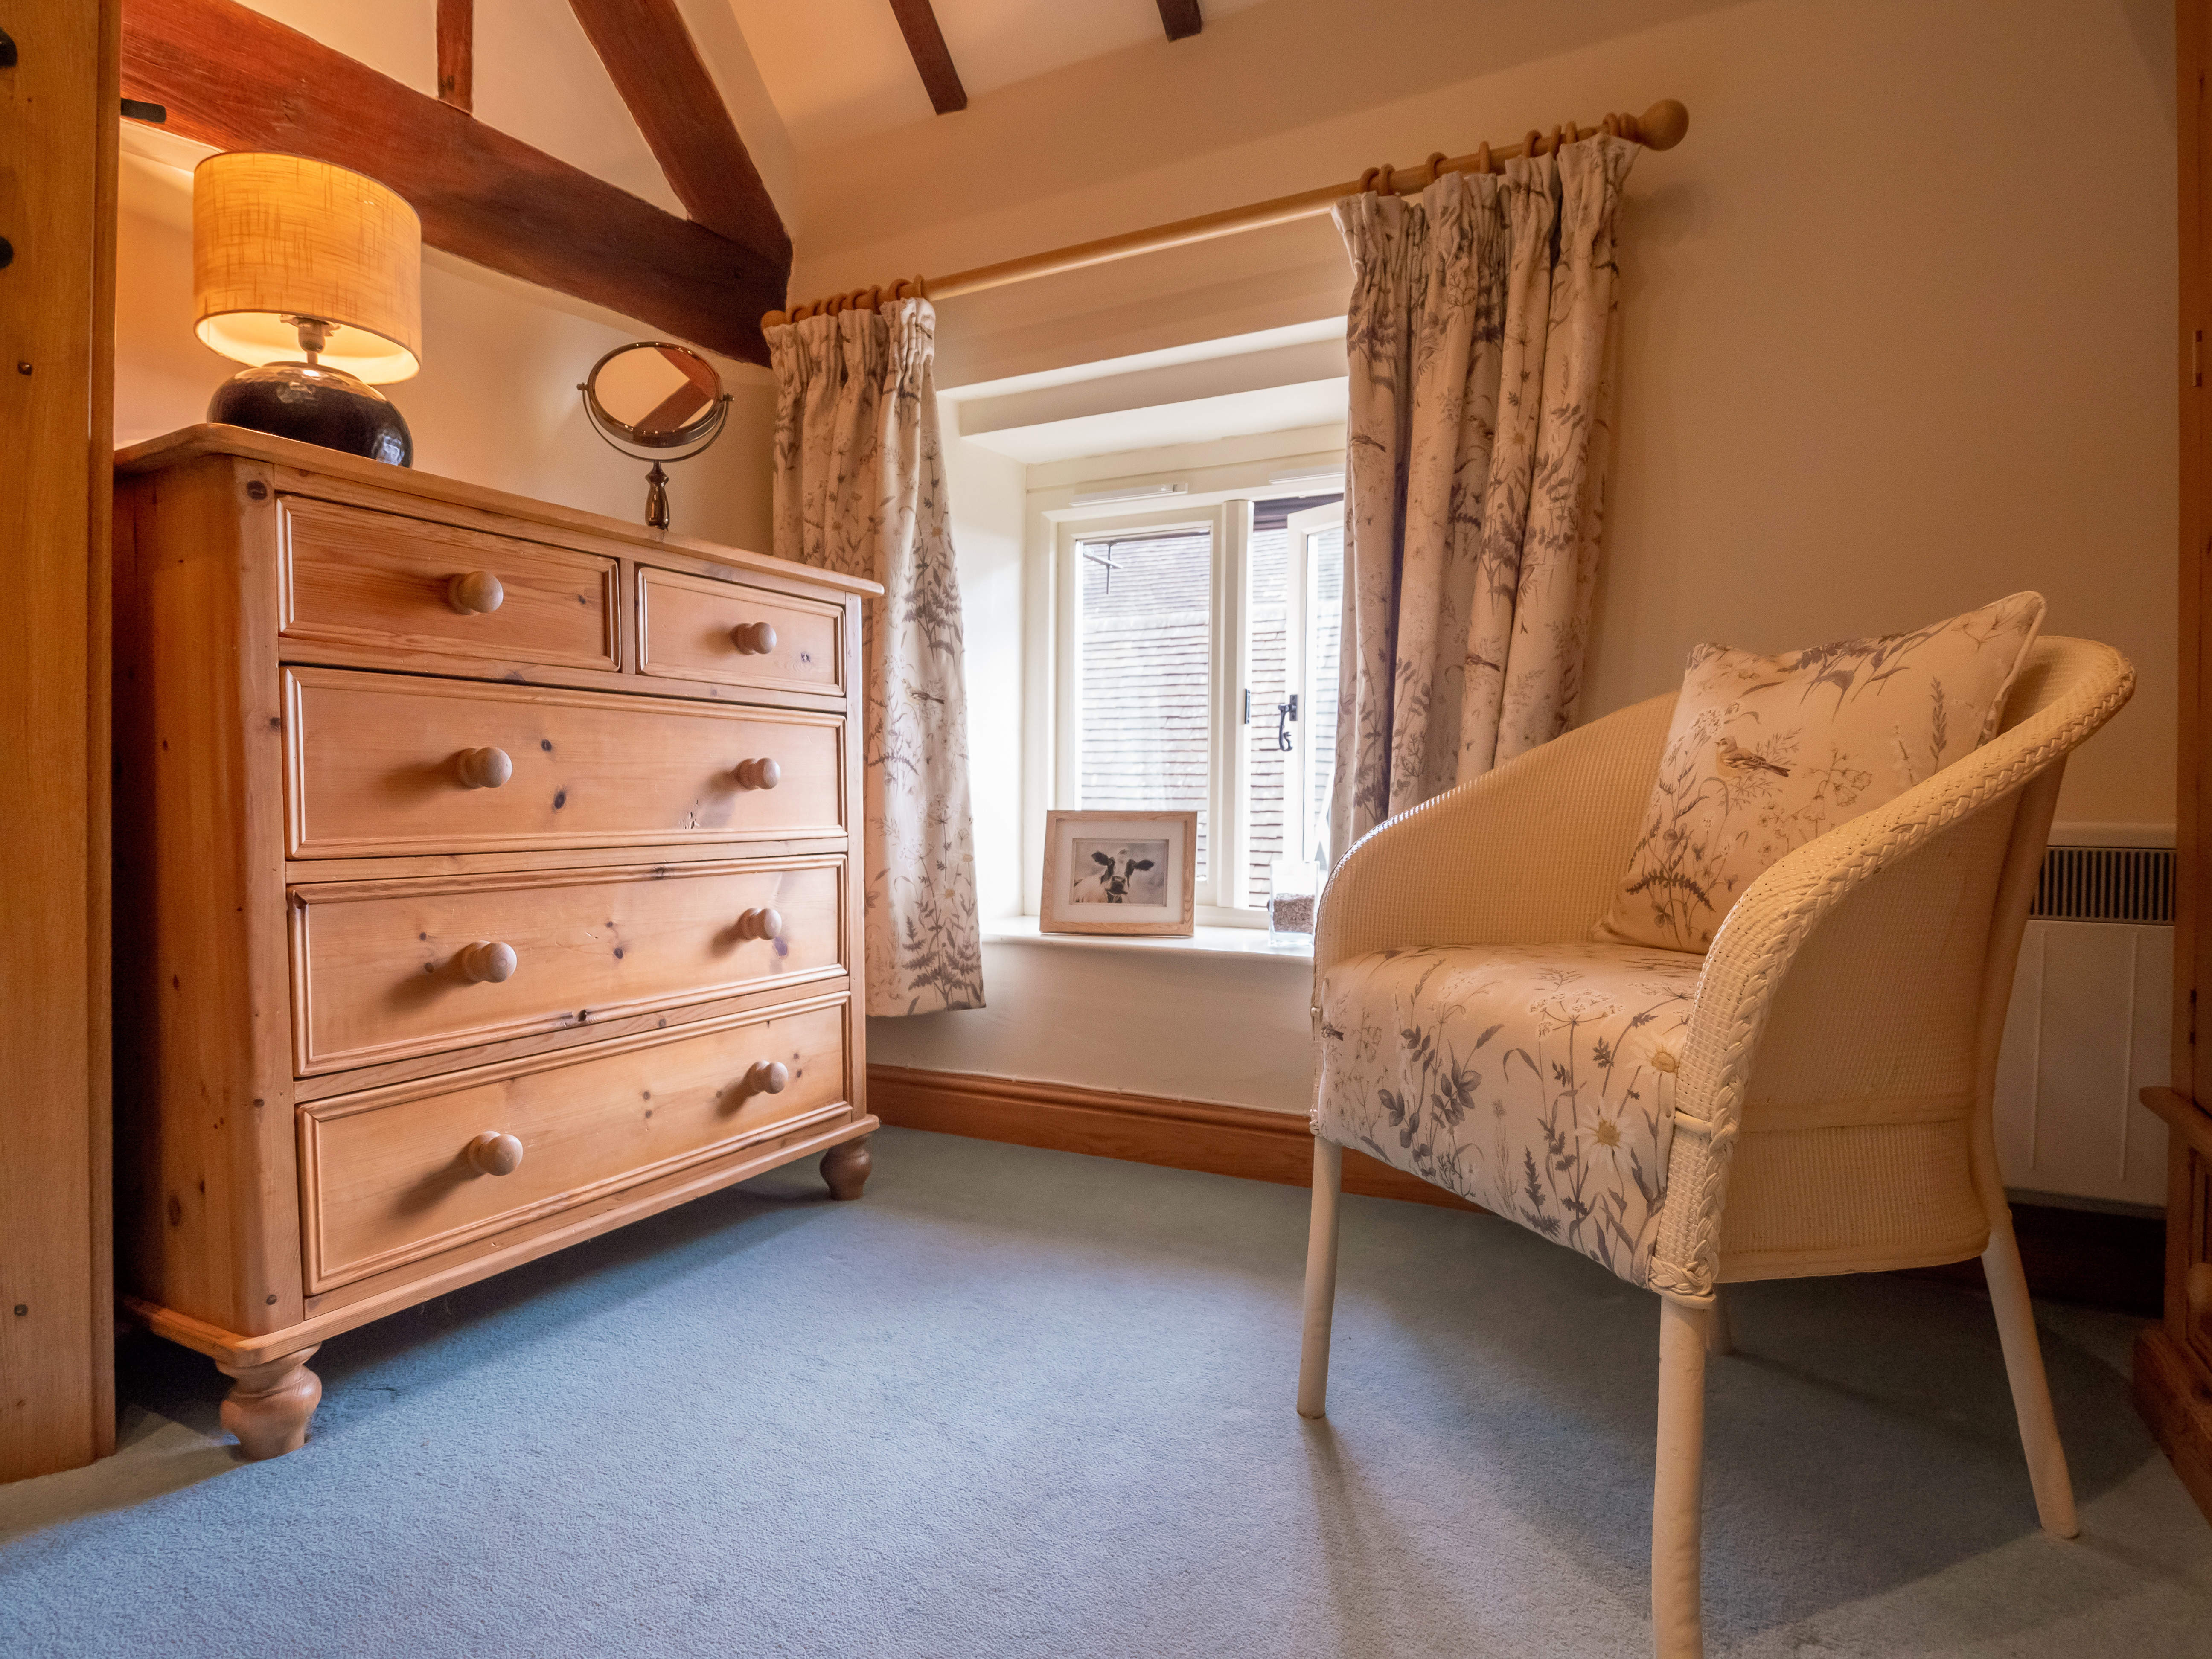 Self catering Cottage Sleeps 3 people